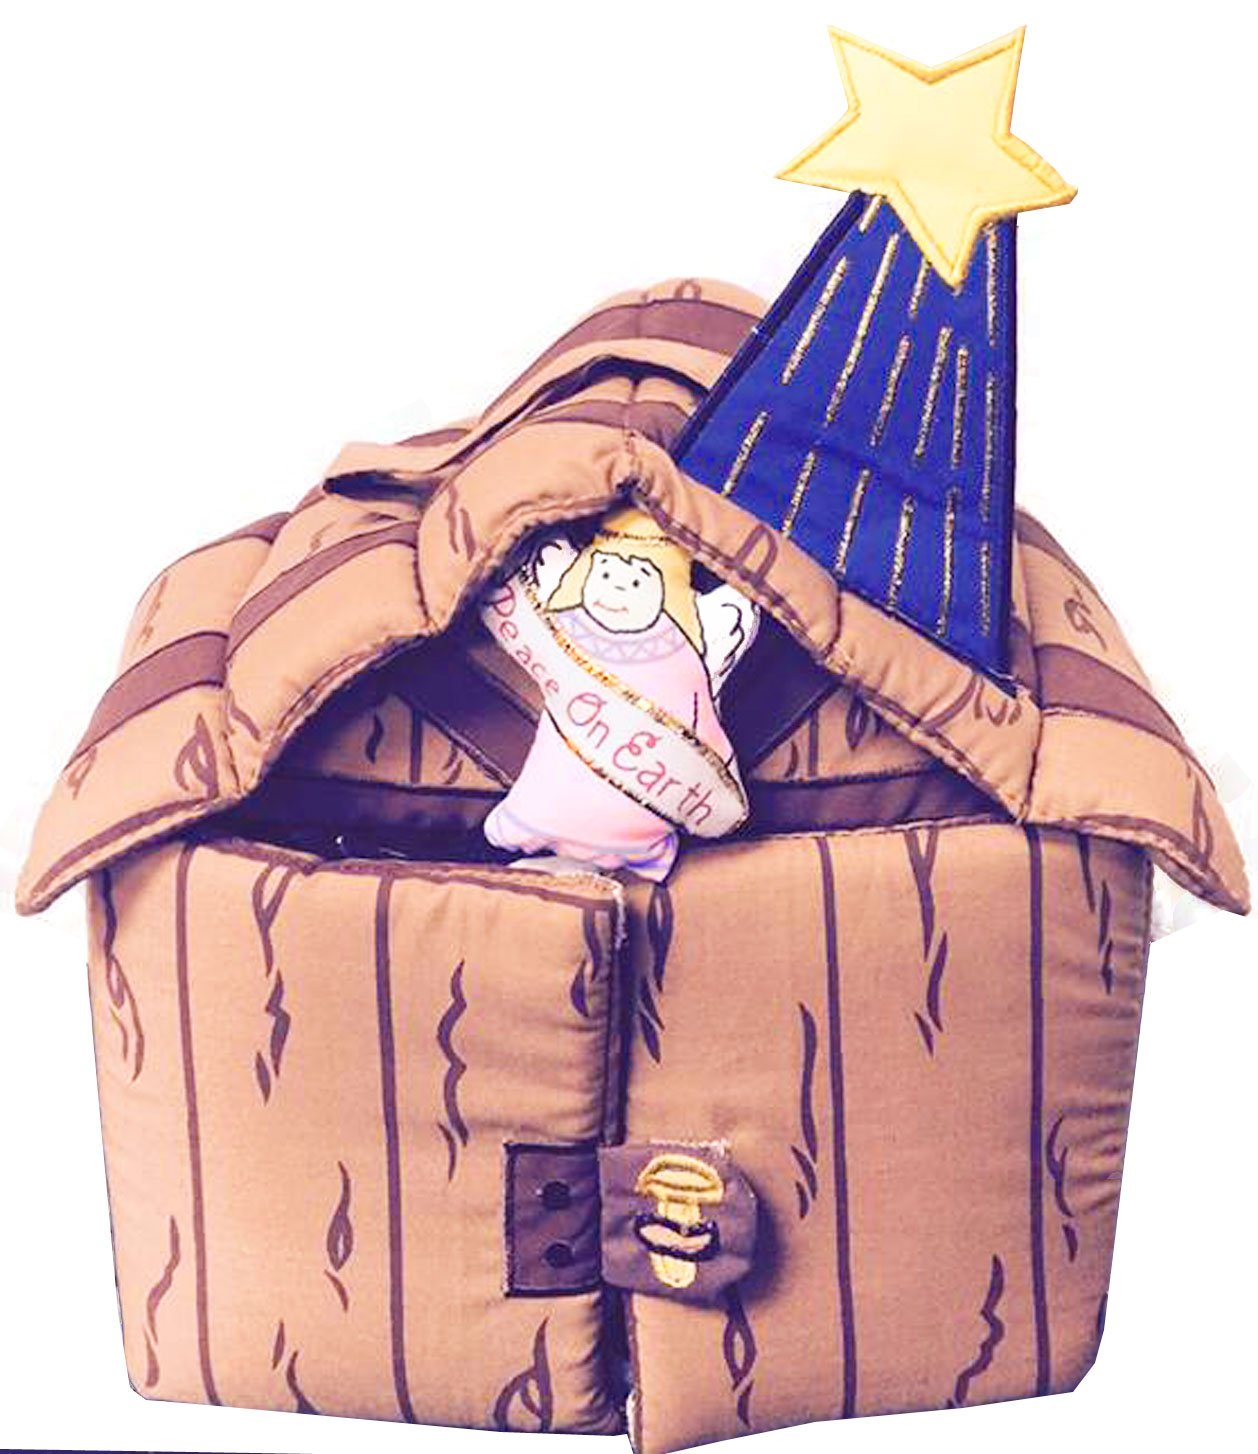 Pockets Of Learning Fabric Nativity Manger Set for Children By Soft Skills Learning Products Inc.